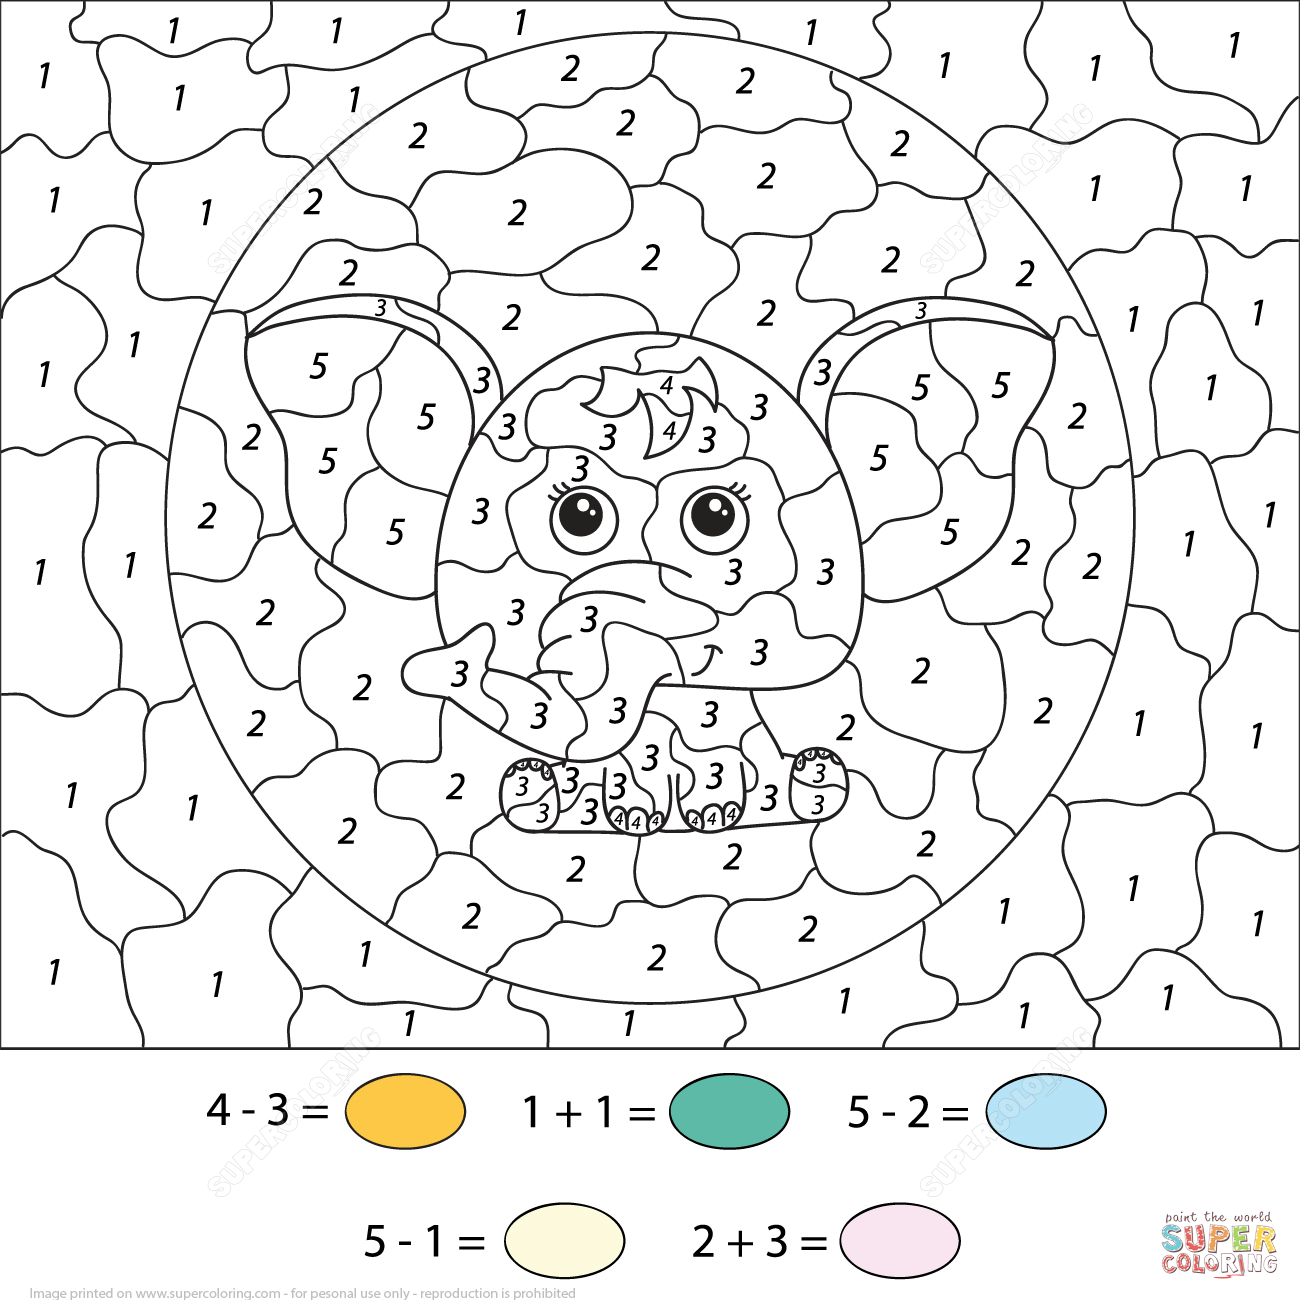 Worksheets Color By Numbers Worksheets elephants color number printable coloring pages subtration and addition a cute cartoon elephant by page